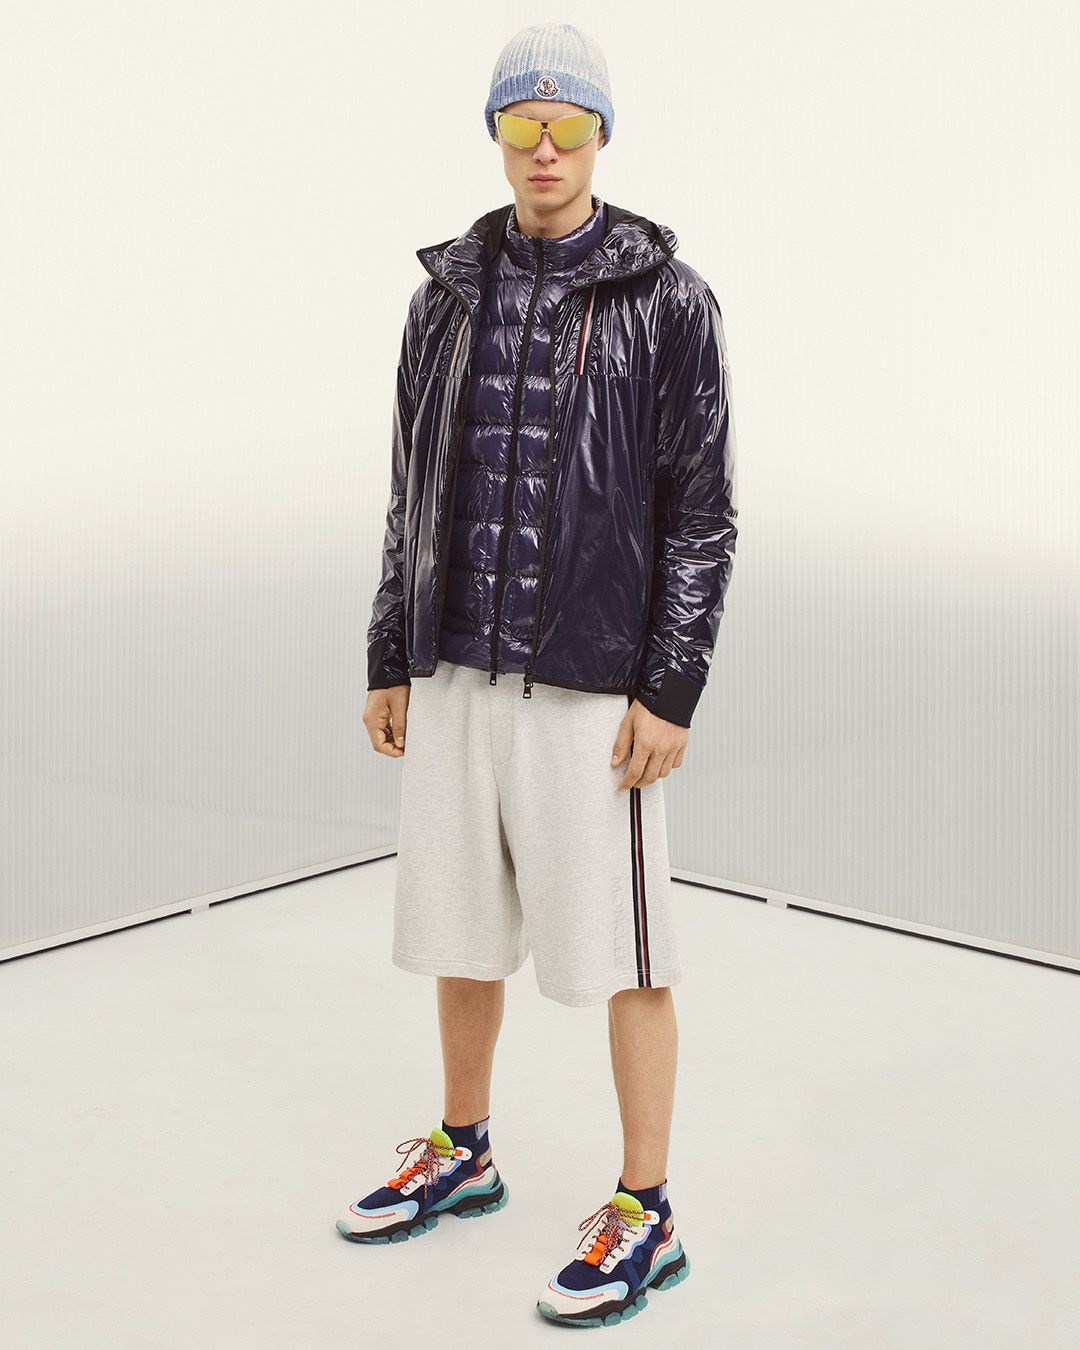 MONCLER COLLECTION SS21 HOLDING COURT